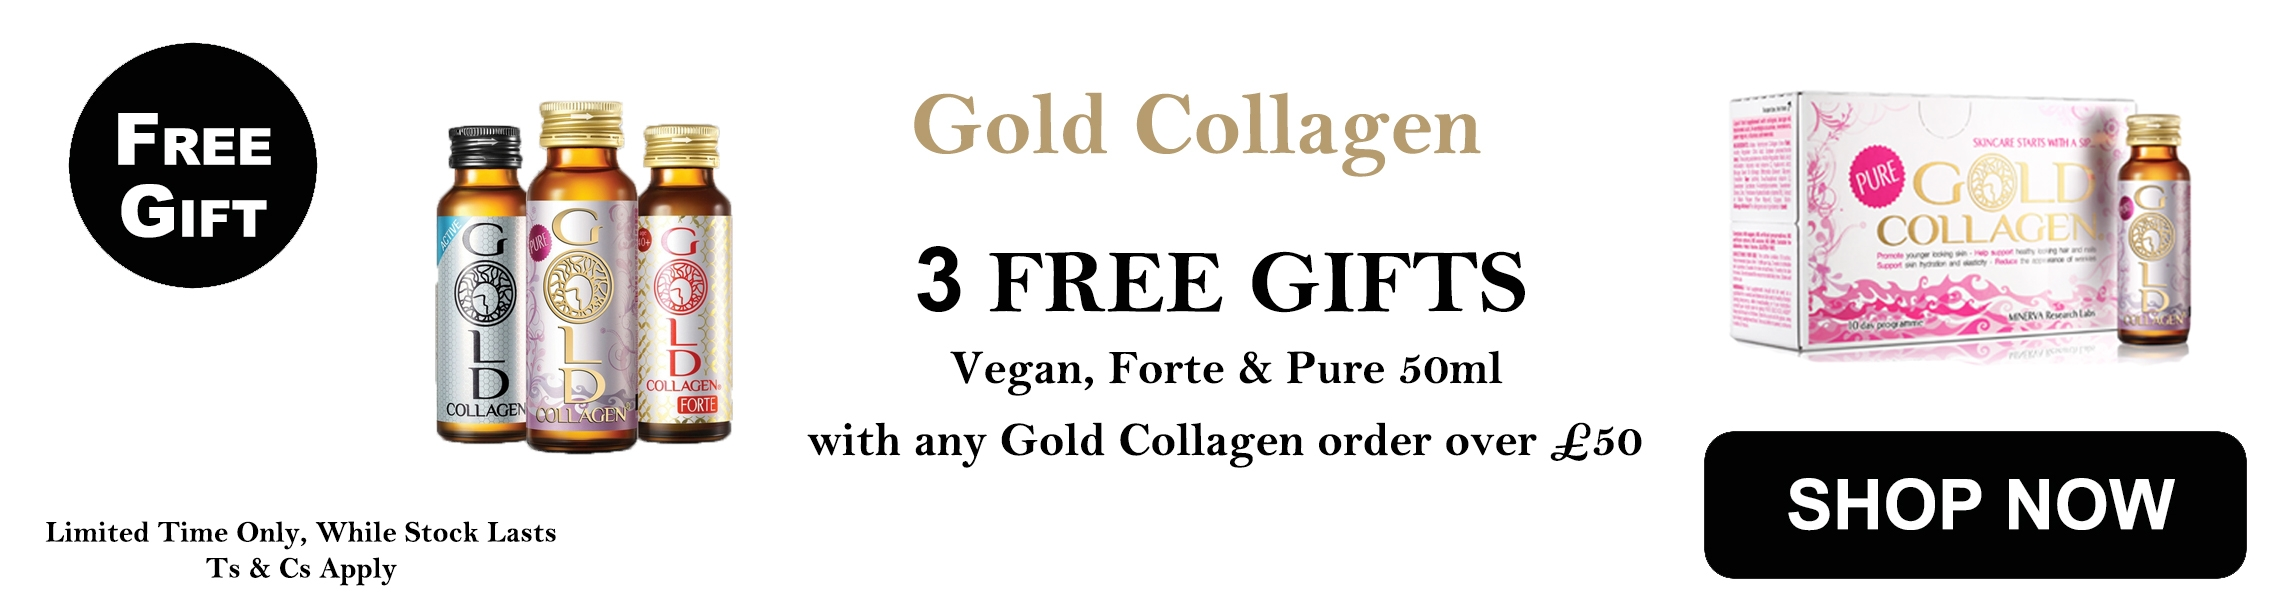 Gold collagen free gift